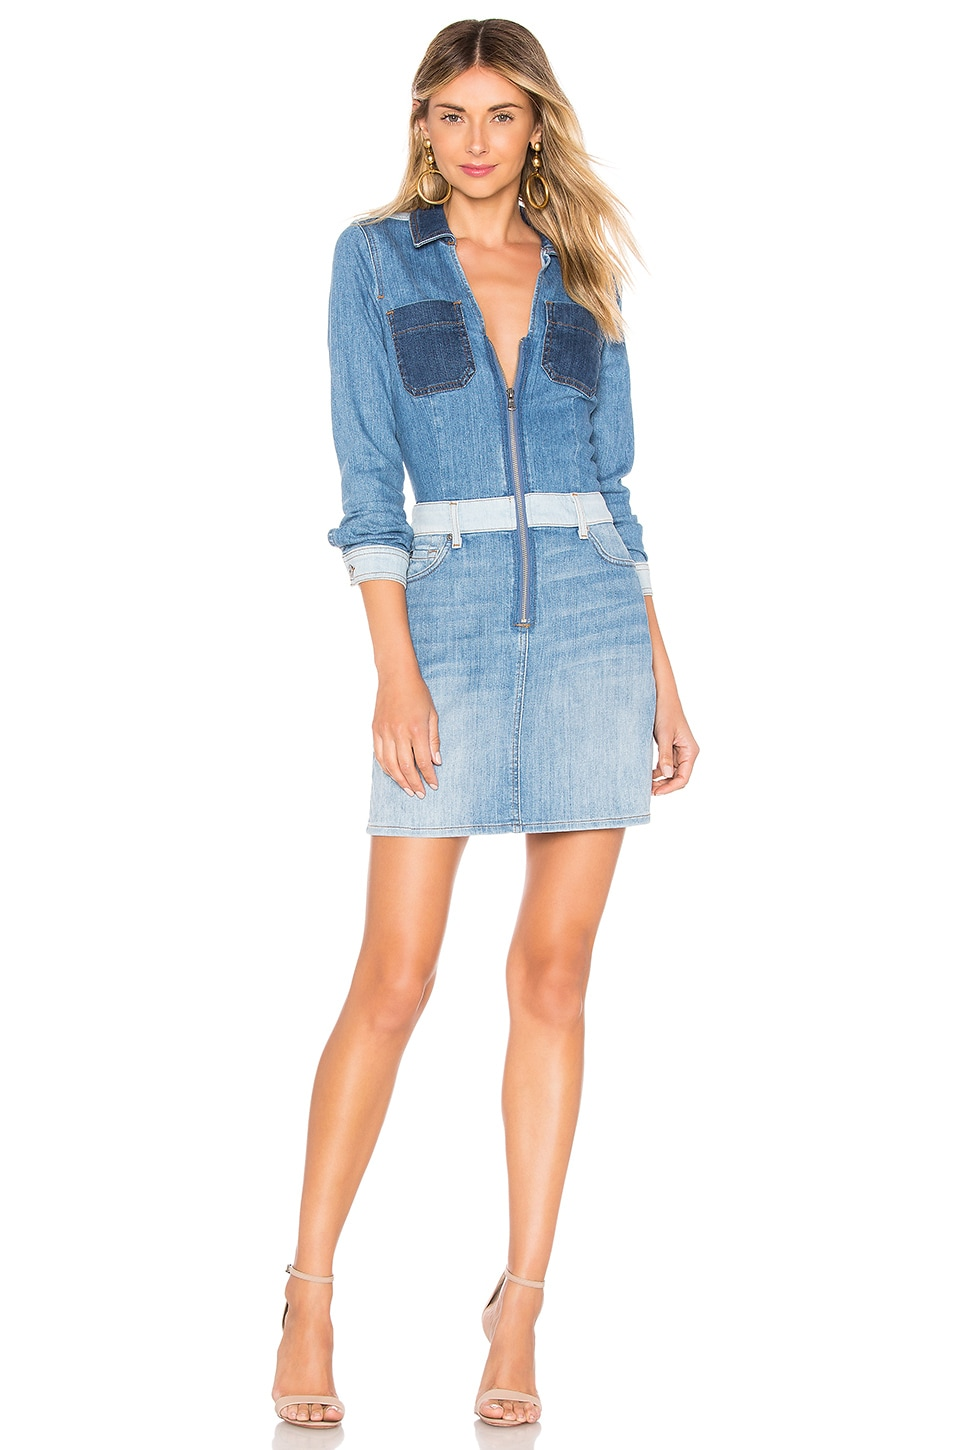 7 For All Mankind Workwear Dress in Patchwork Sunrise